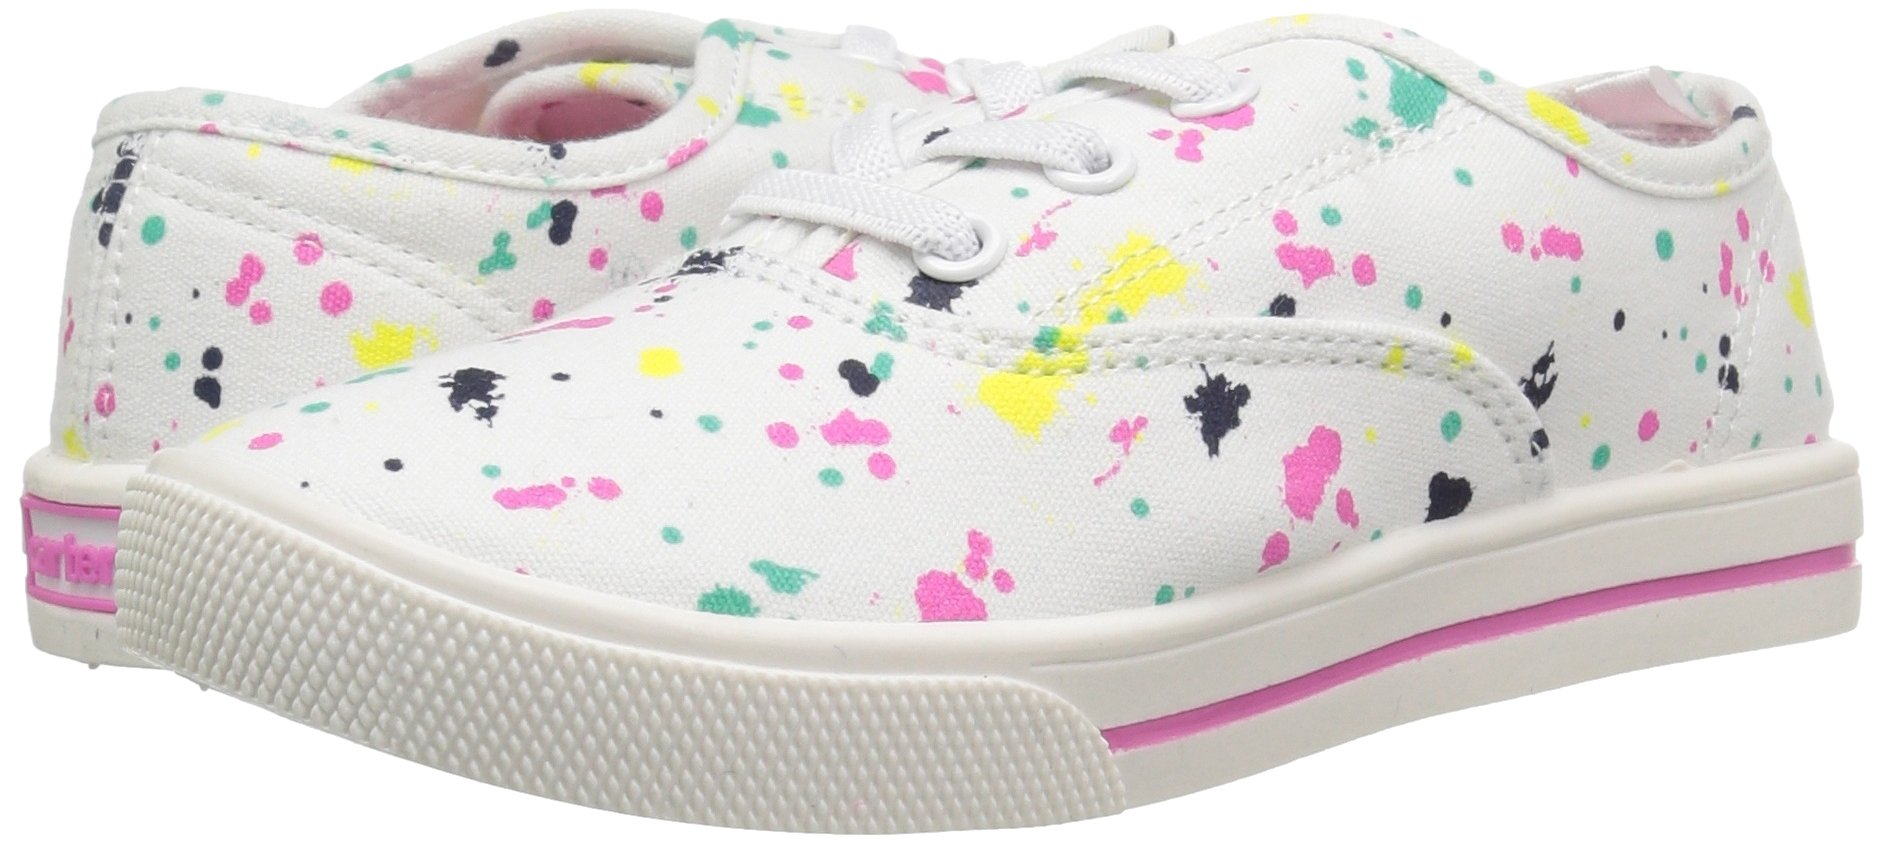 Carter's Piper Girl's Casual Sneaker, White/Print, 3 M US Little Kid by Carter's (Image #6)